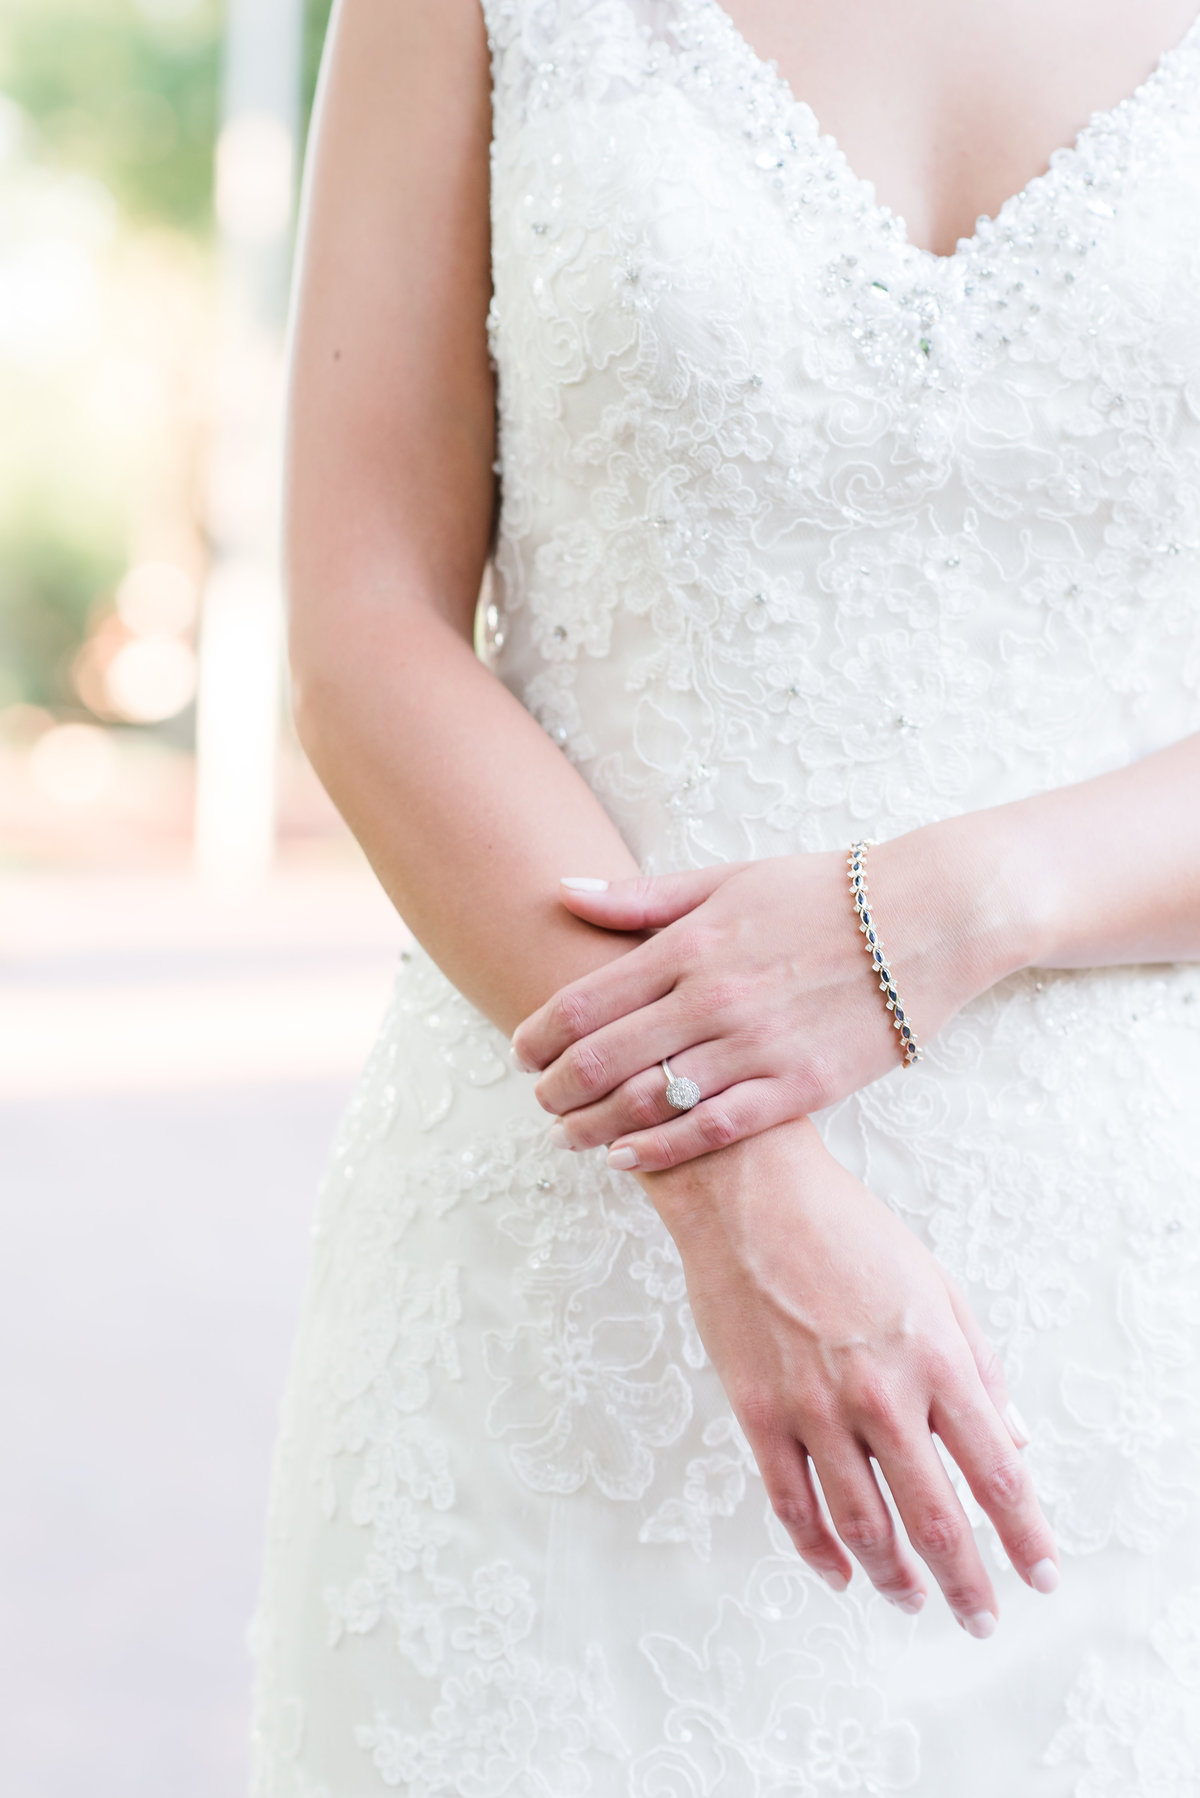 Brides arms and hands